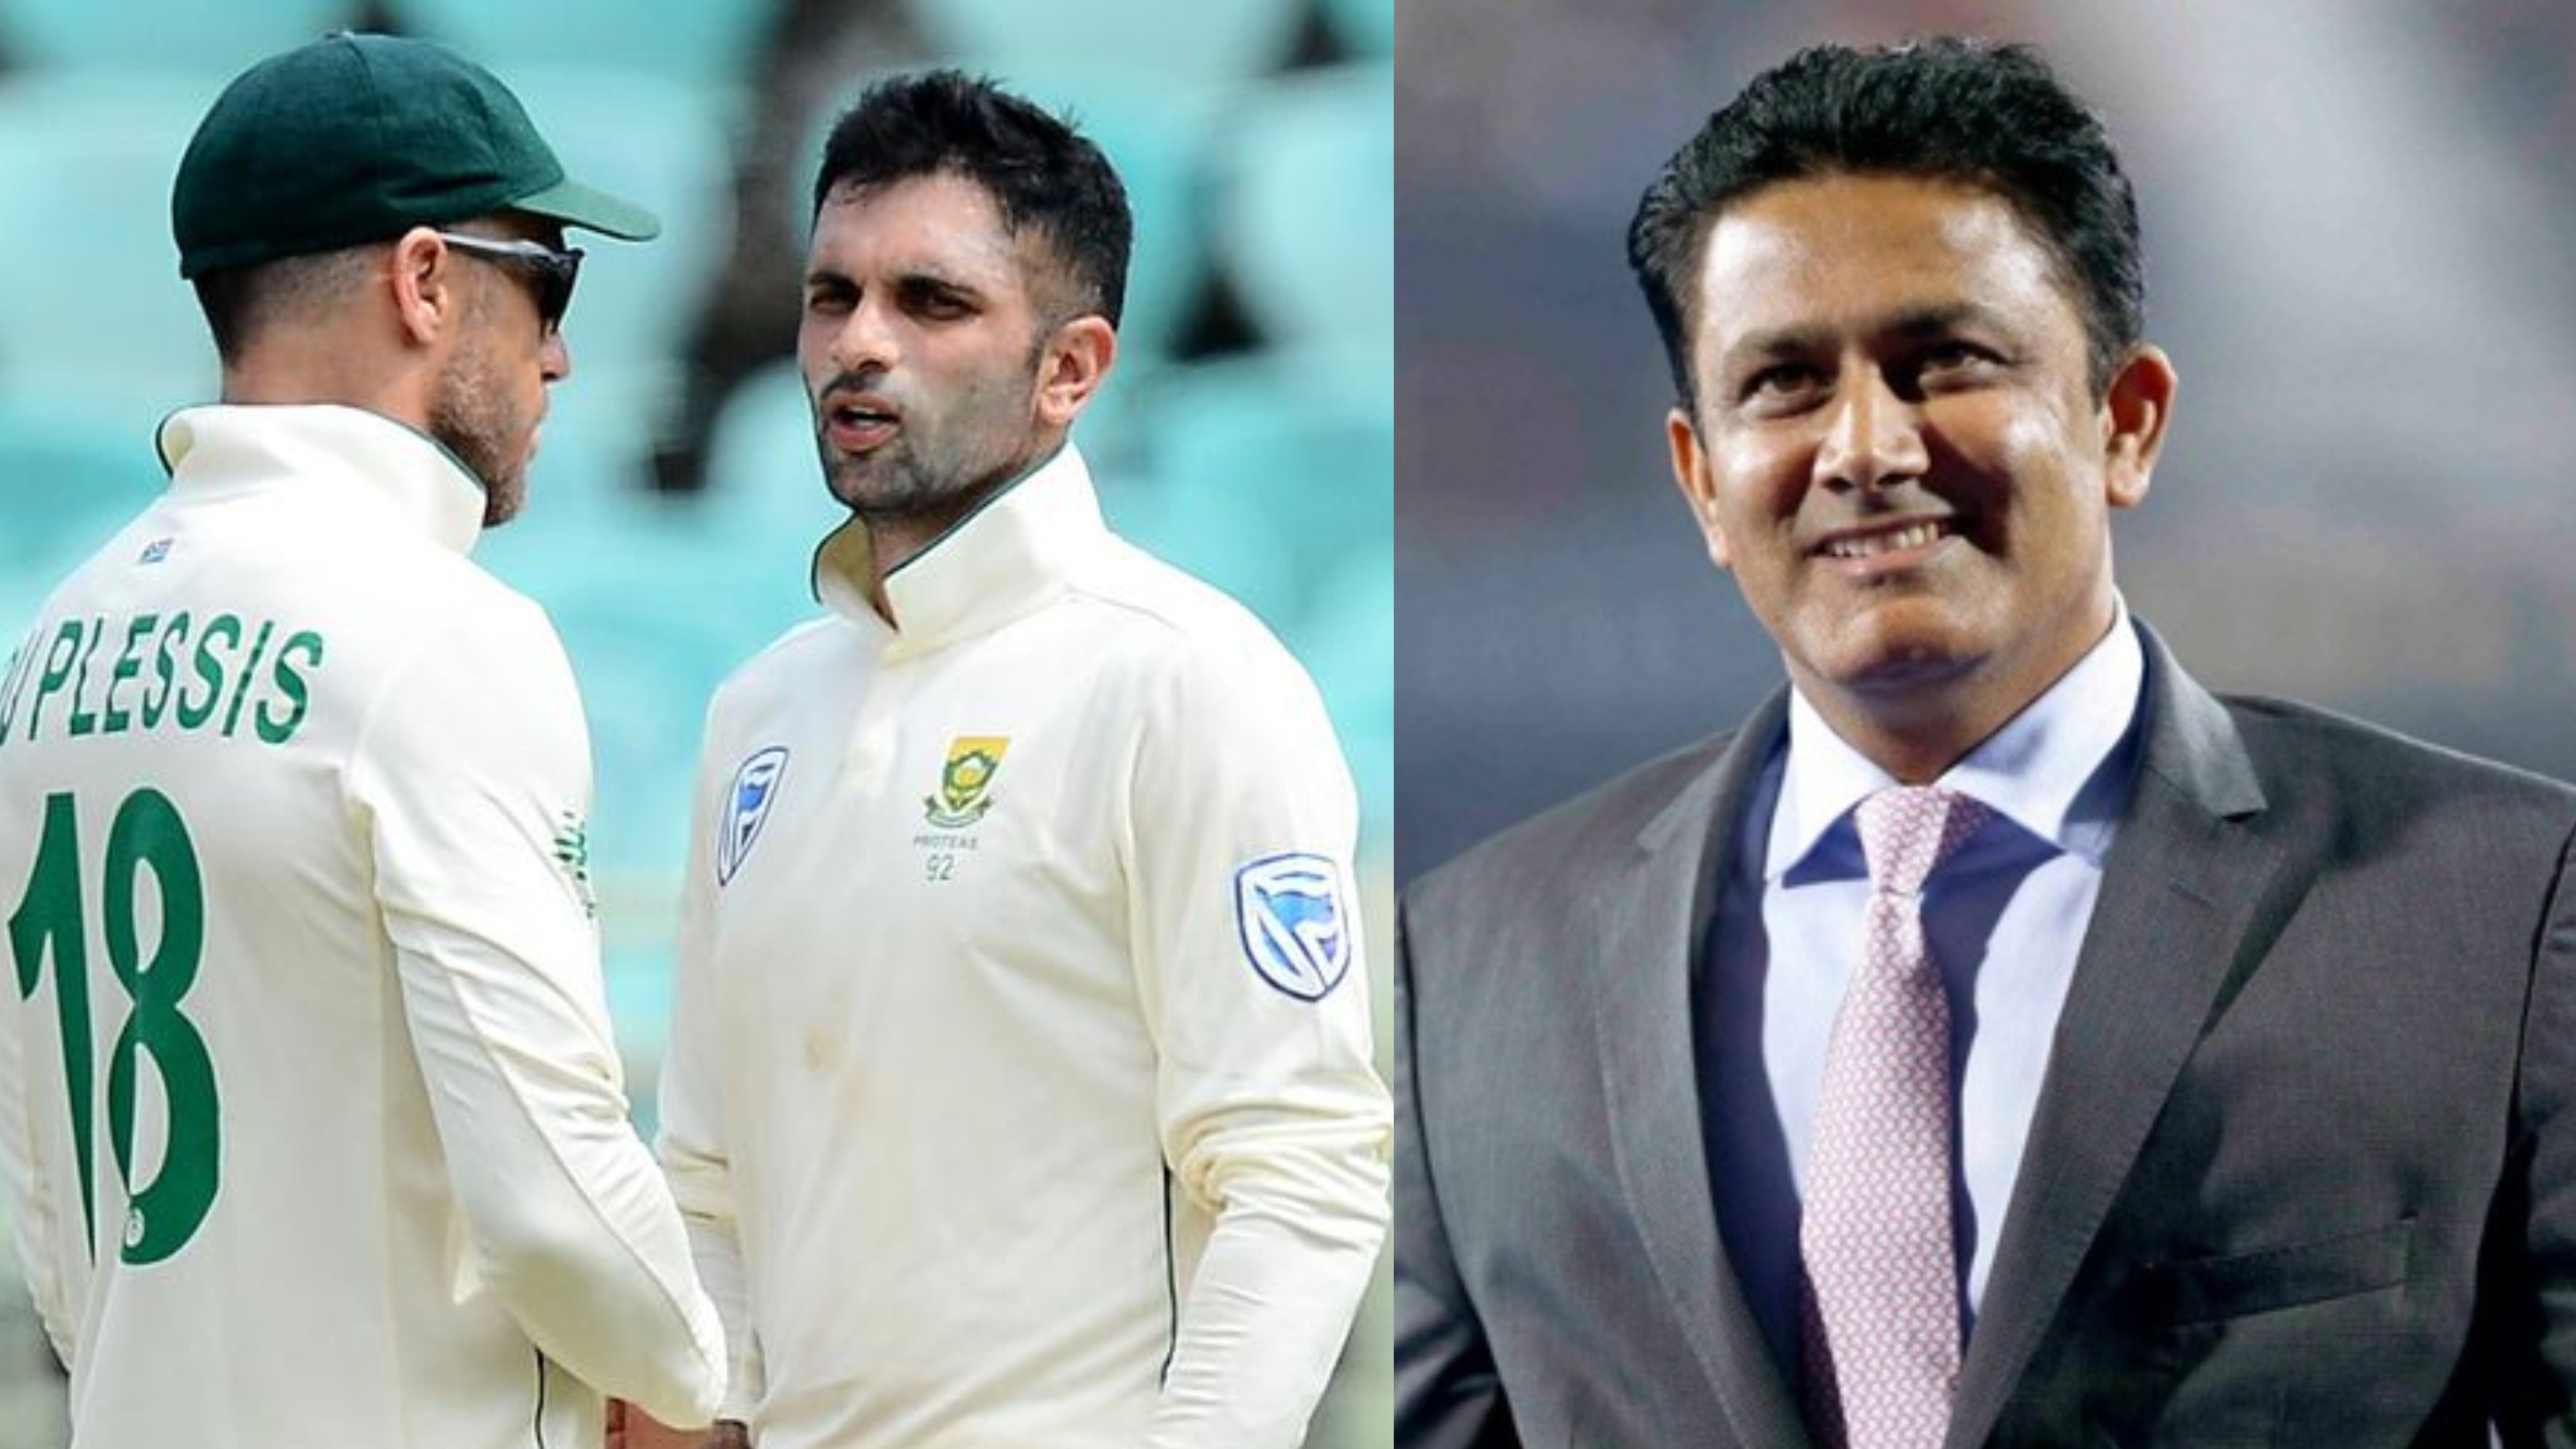 IND v SA 2019: Trying to match Indian balance went wrong for South Africa at Vizag, says Anil Kumble